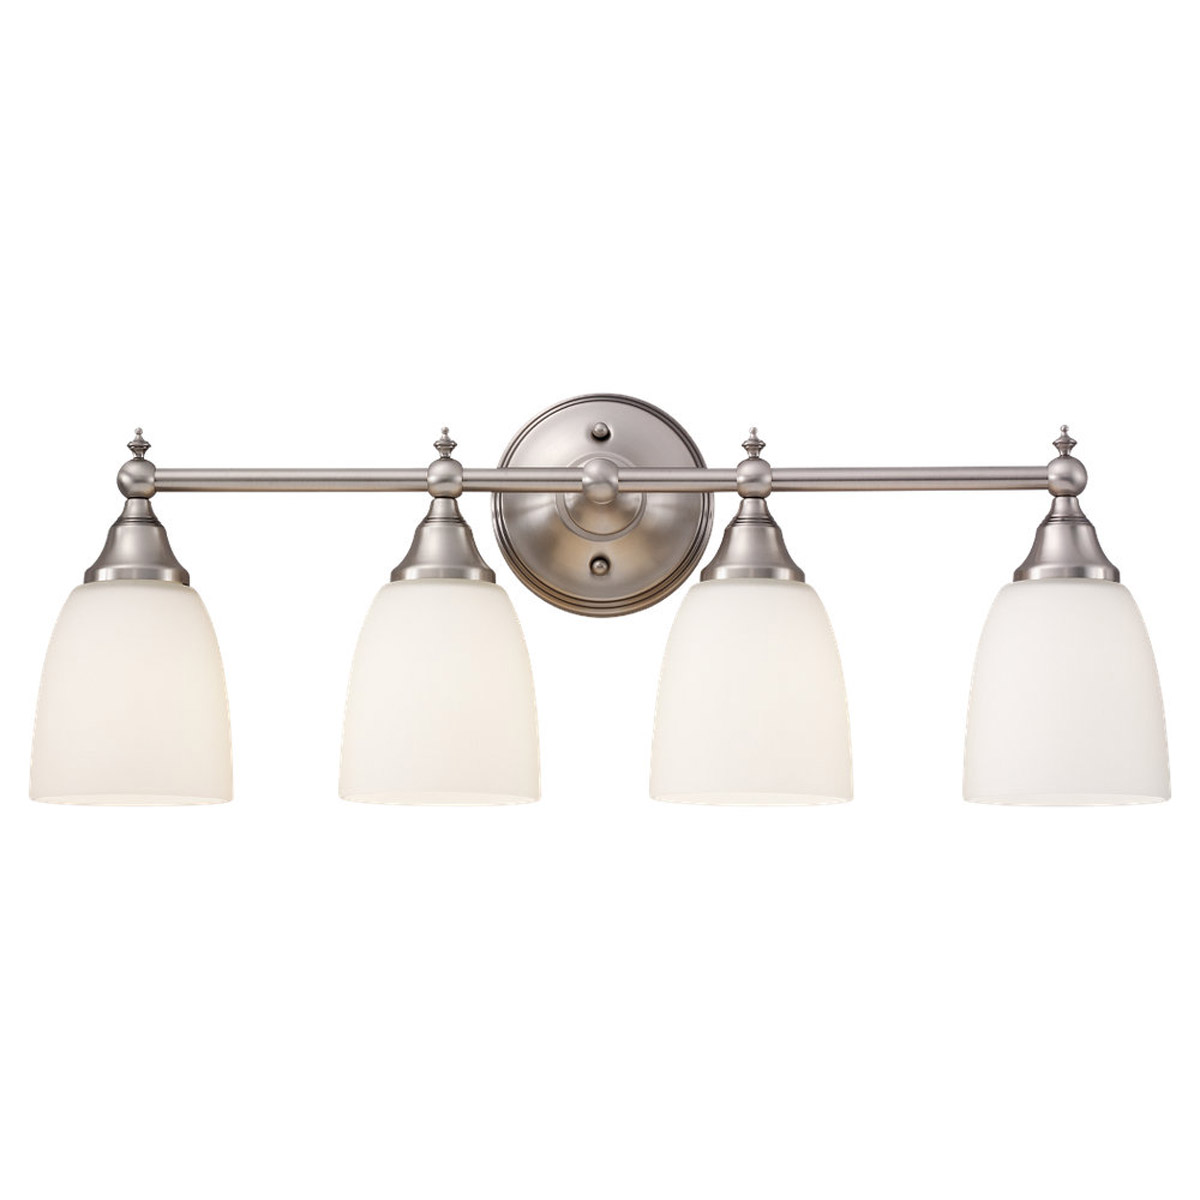 Sea Gull Lighting Finitude 4 Light Bath Vanity in Antique Brushed Nickel 44618-965 photo